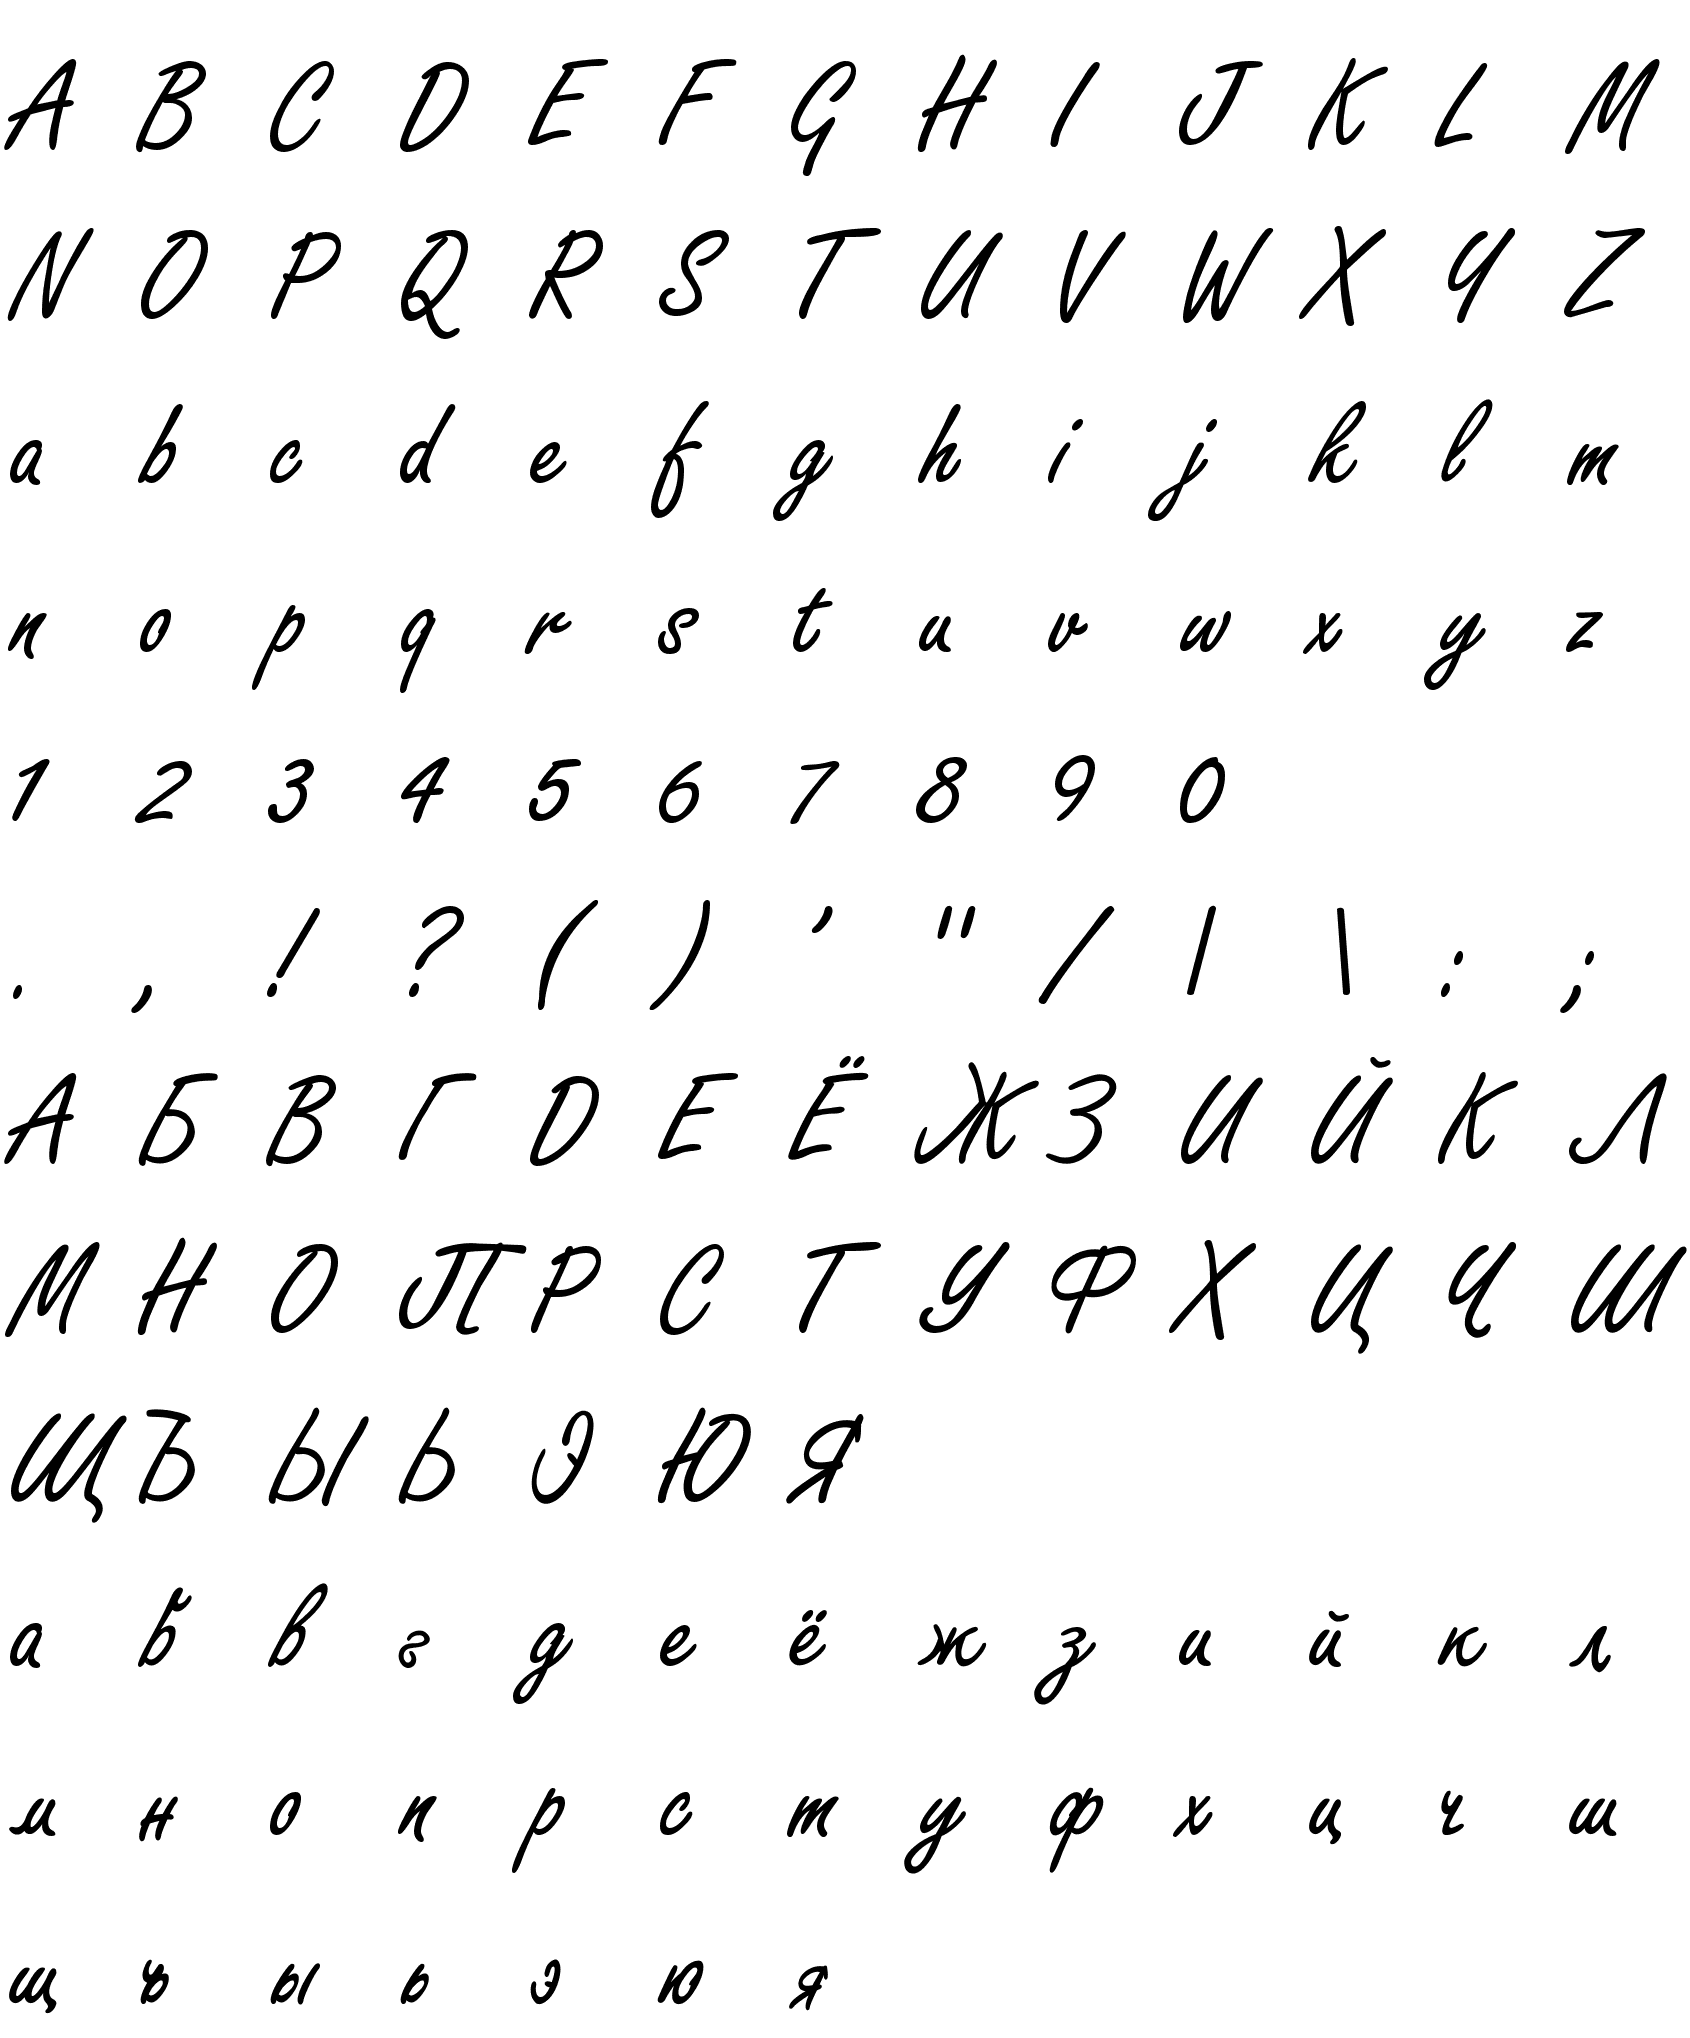 Шрифт Carefree Cyrillic Normal